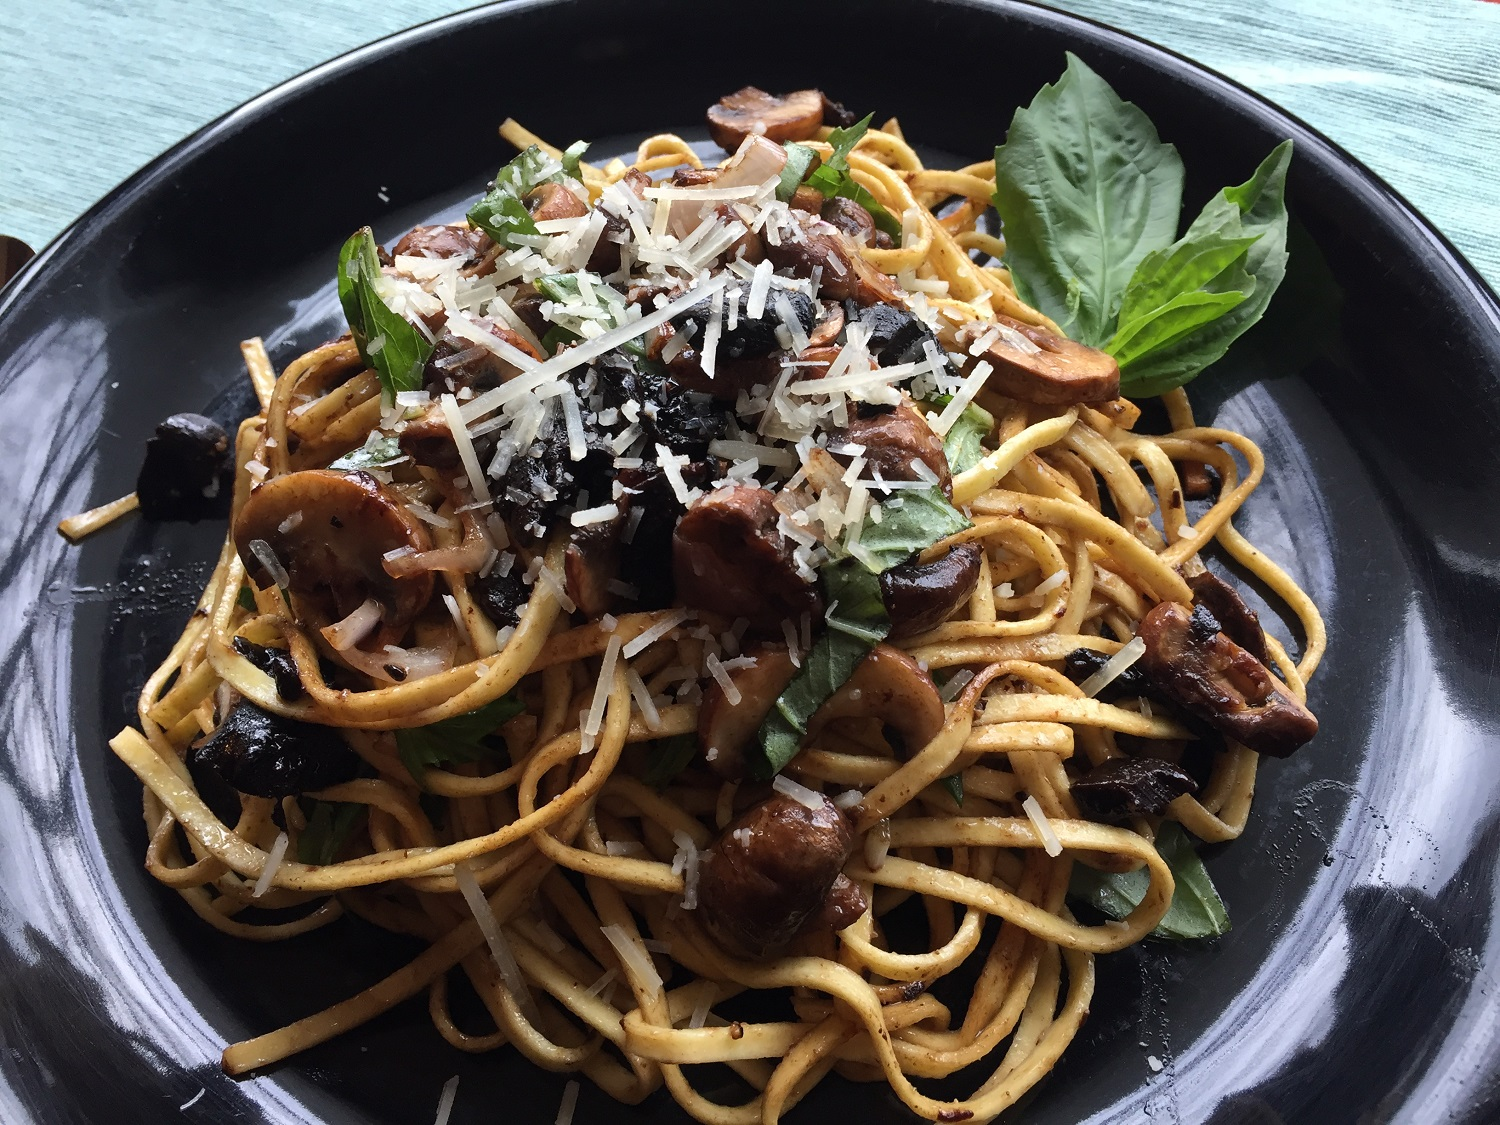 linguine-with-mushrooms-and-black-garlic-recipe